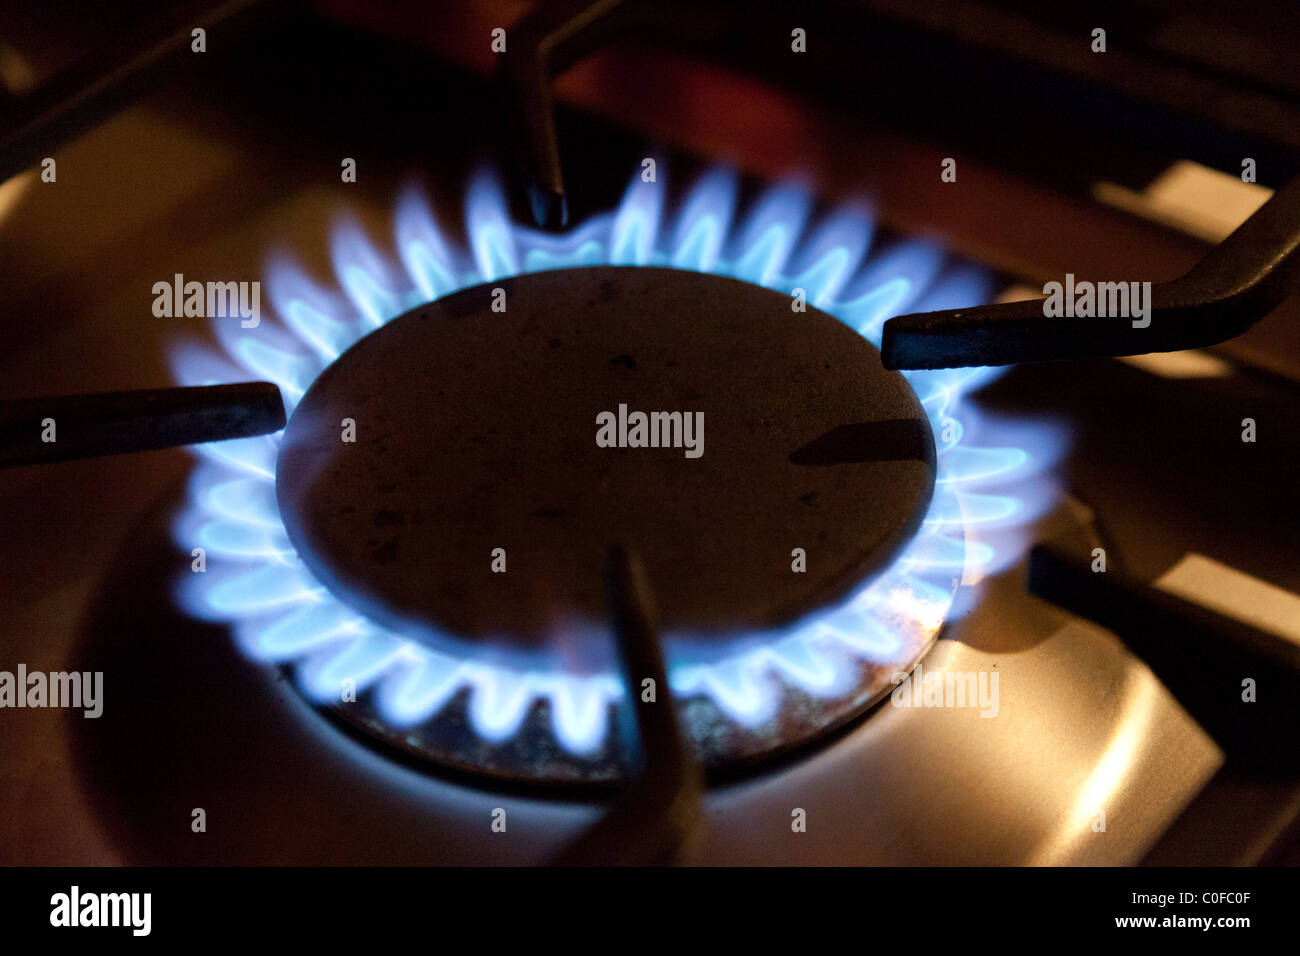 Gas ring on stove hob - Stock Image